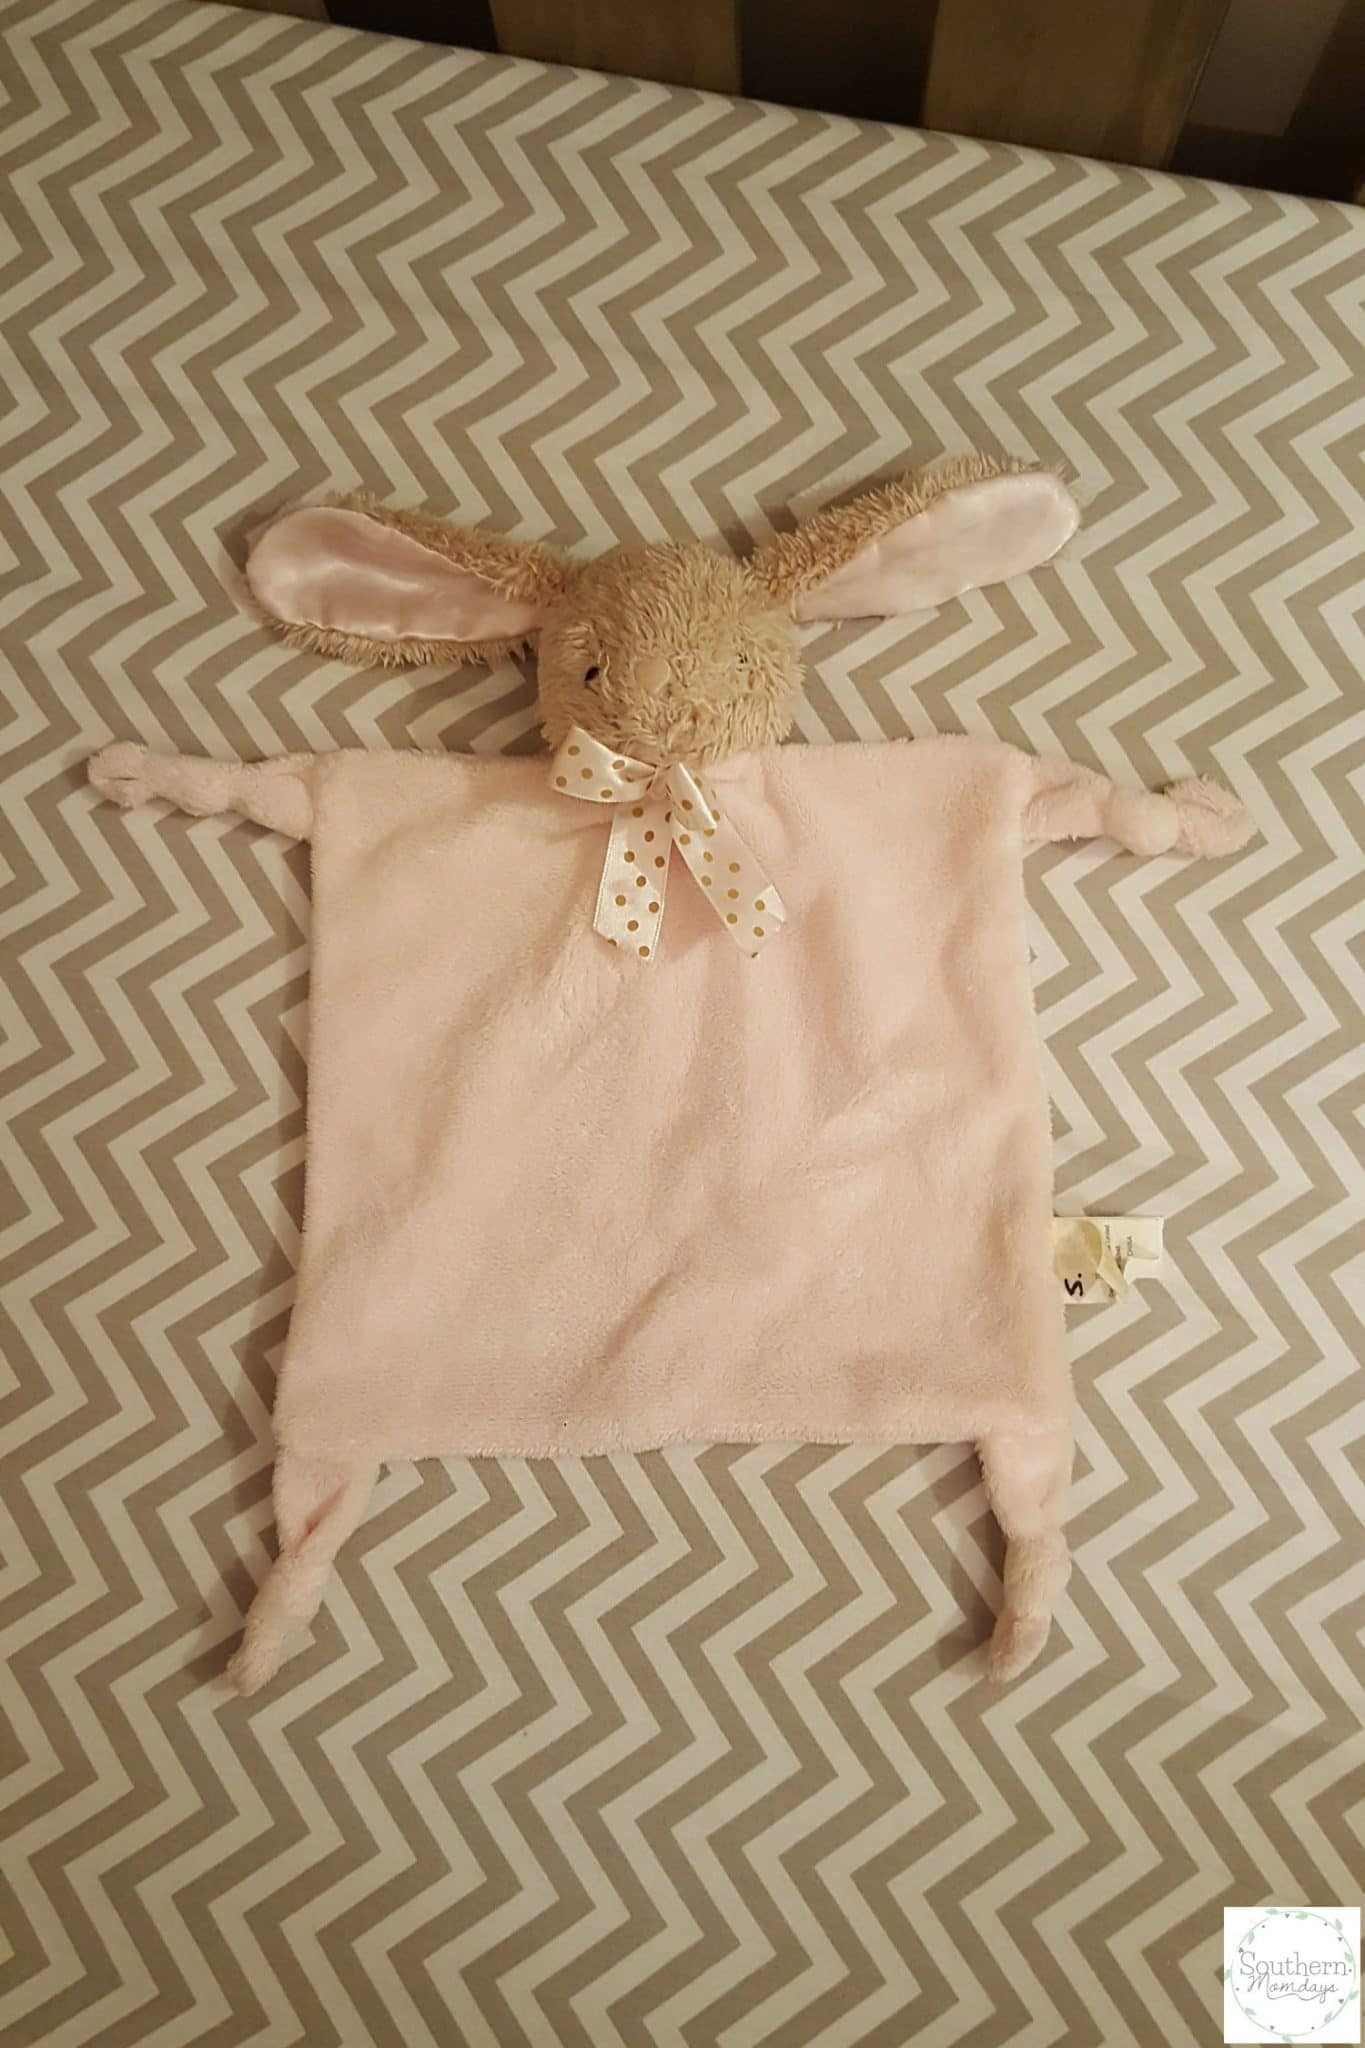 Bunny blanket lovey example used for sleep training, featured on the Southern Momdays blog